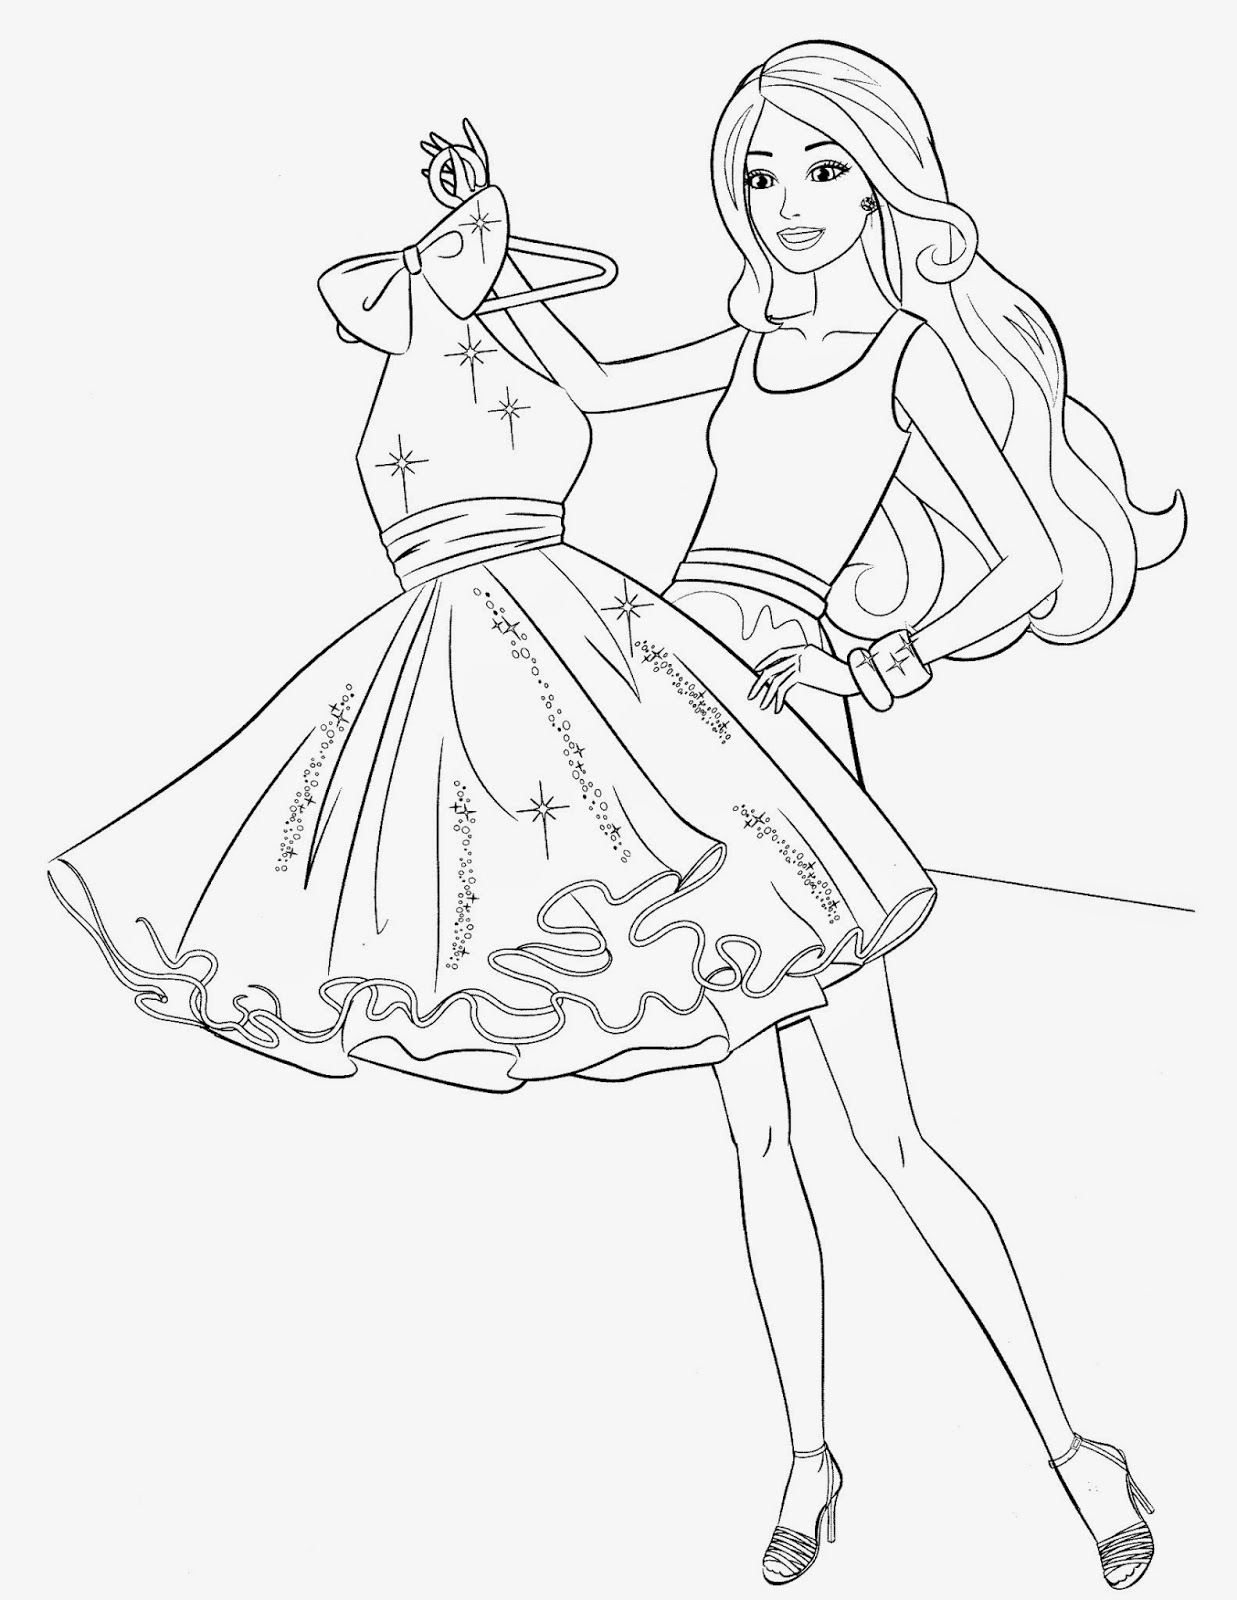 barbie pictures to print coloring pages barbie free printable coloring pages pictures barbie to print